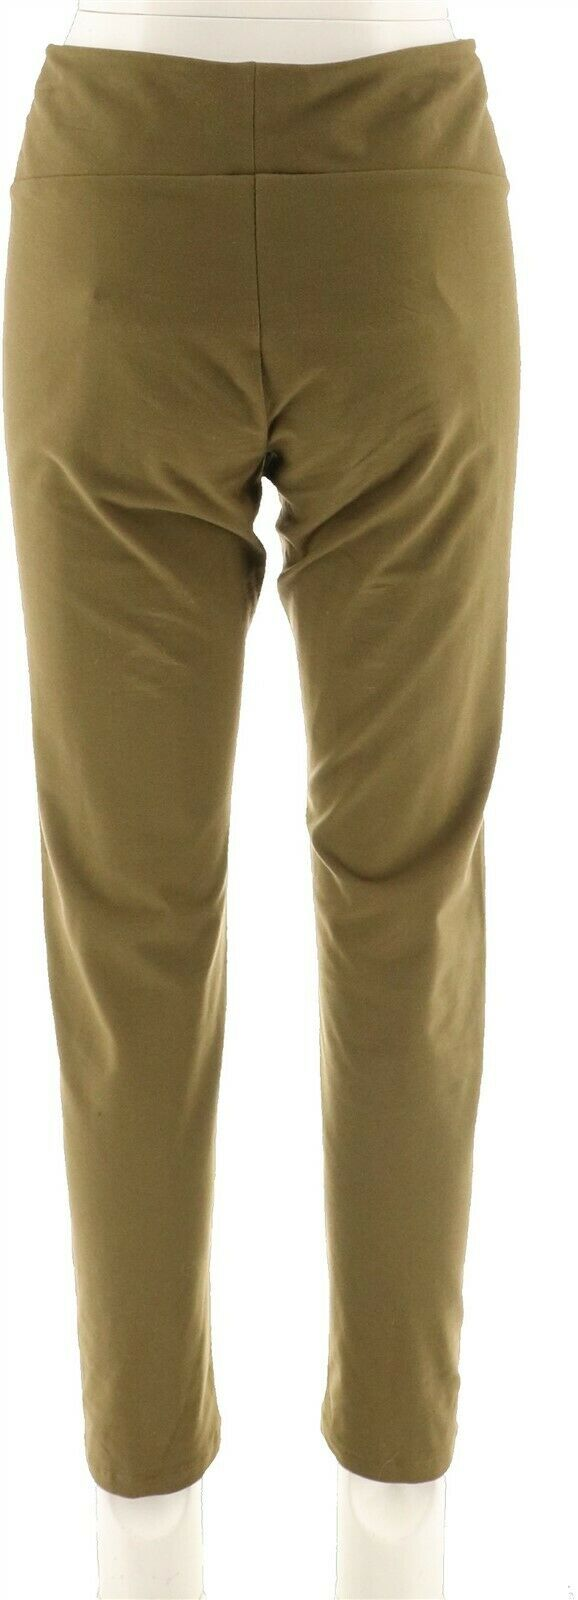 Women with Control Tummy Control Ankle Length Pants Marine Navy L NEW A286518